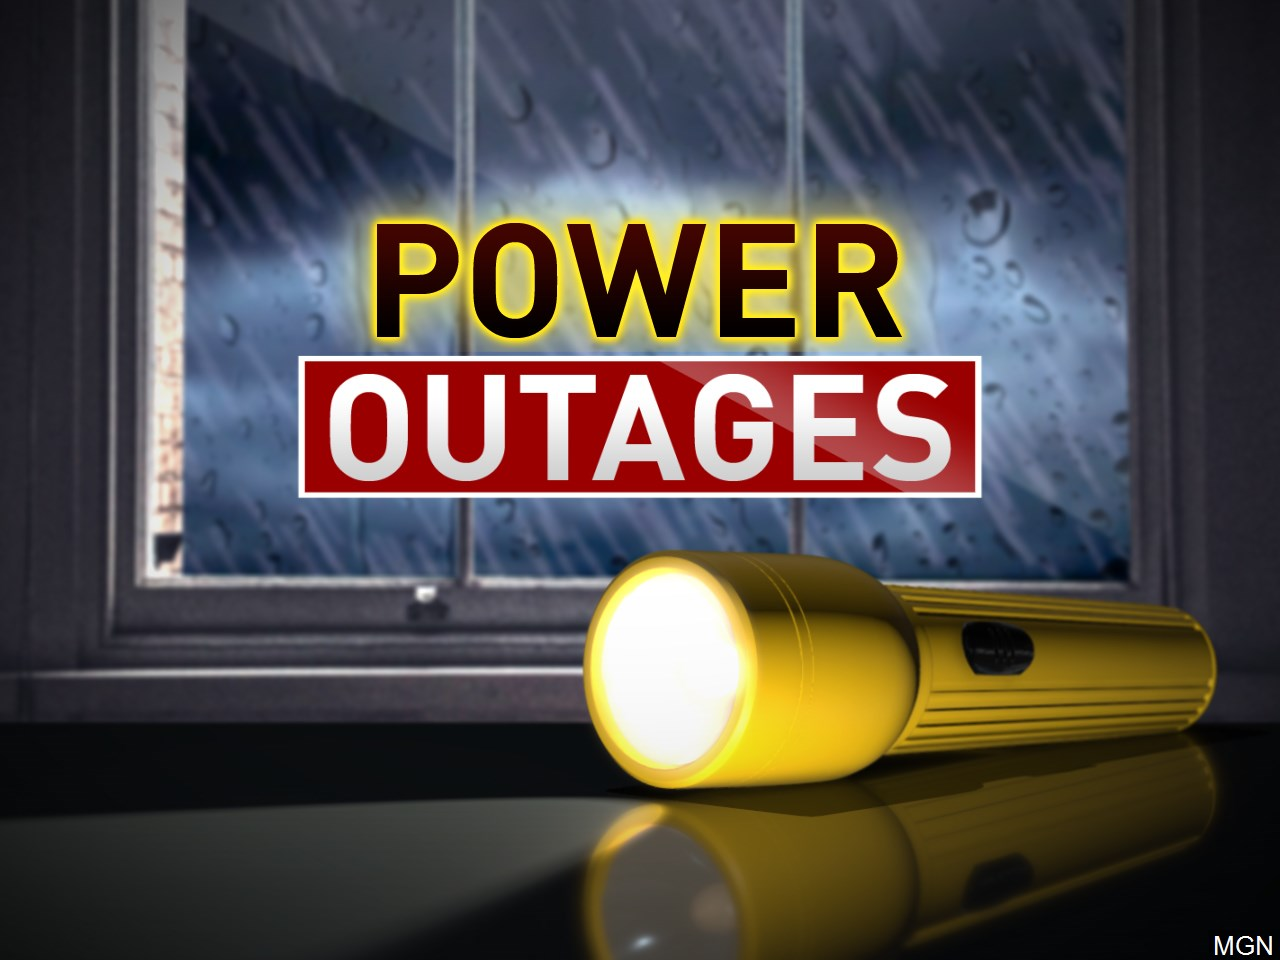 Power outage in Bass Lake & Oakhurst communites